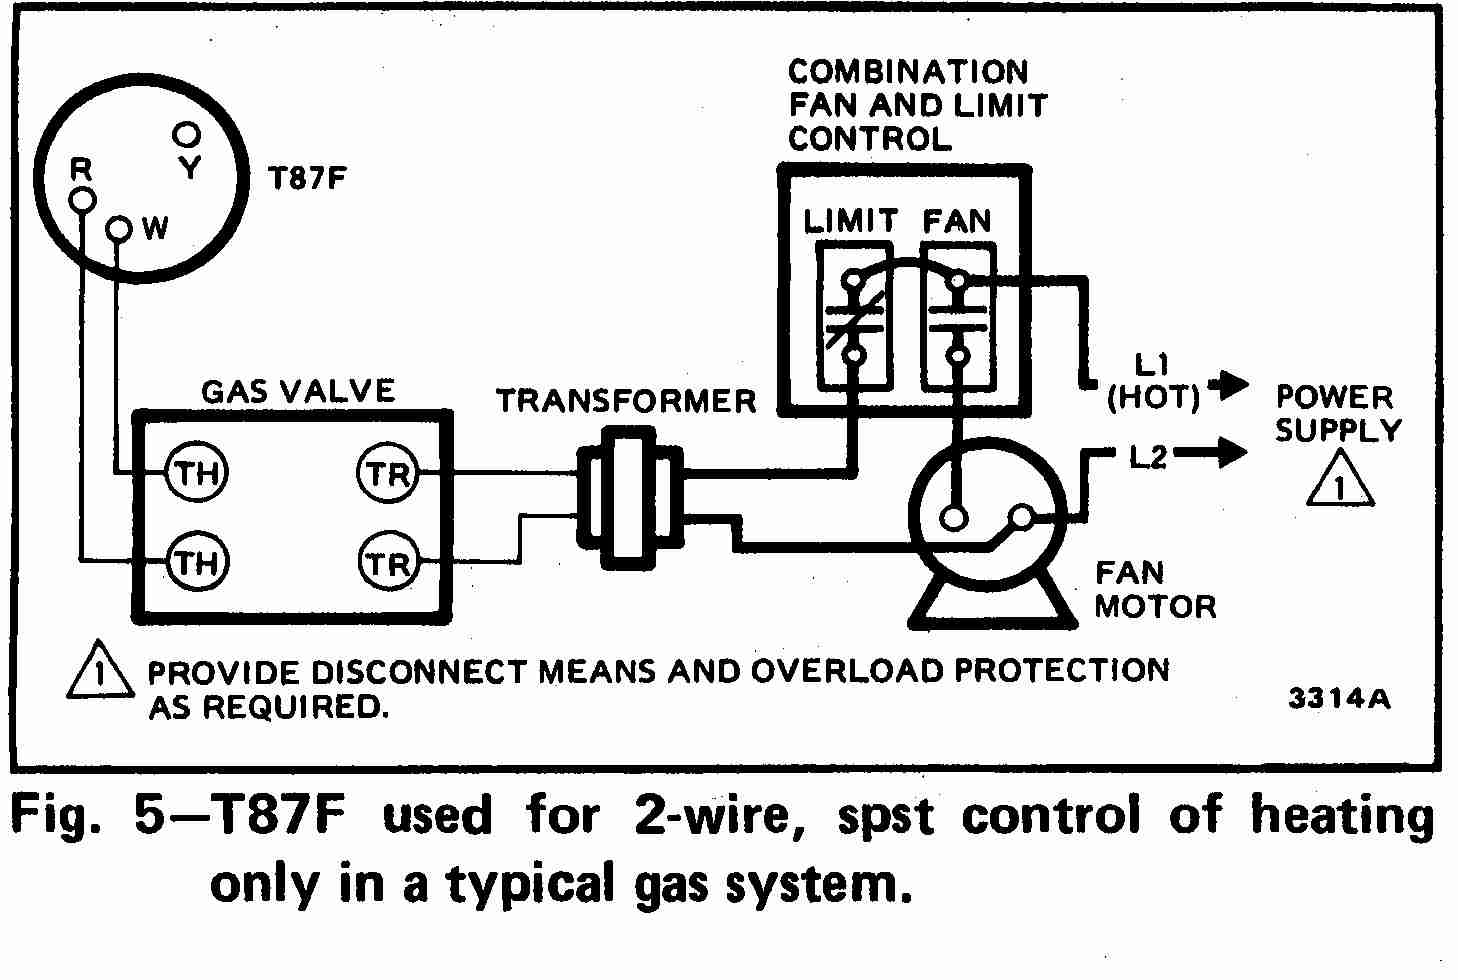 Ac Heater Wire Schematcs Wiring Library 1983 Gm Cruise Control Diagram Honeywell T87f Thermostat For 2 Spst Of Heating Only In